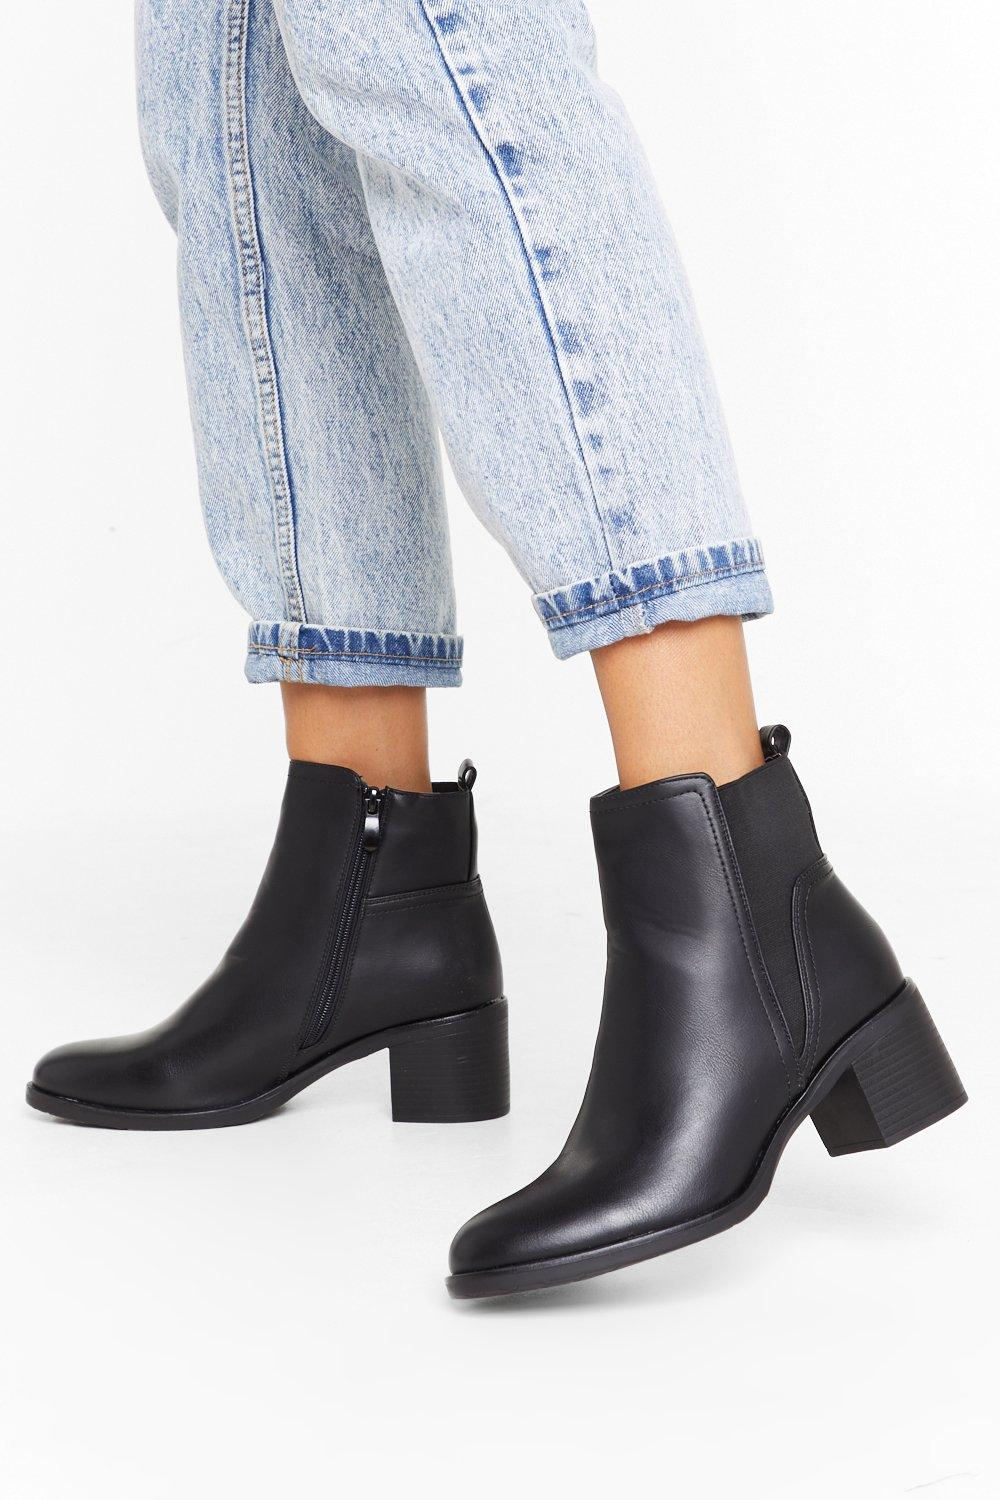 Image of Boot Your Shot Faux Leather Chelsea Boots